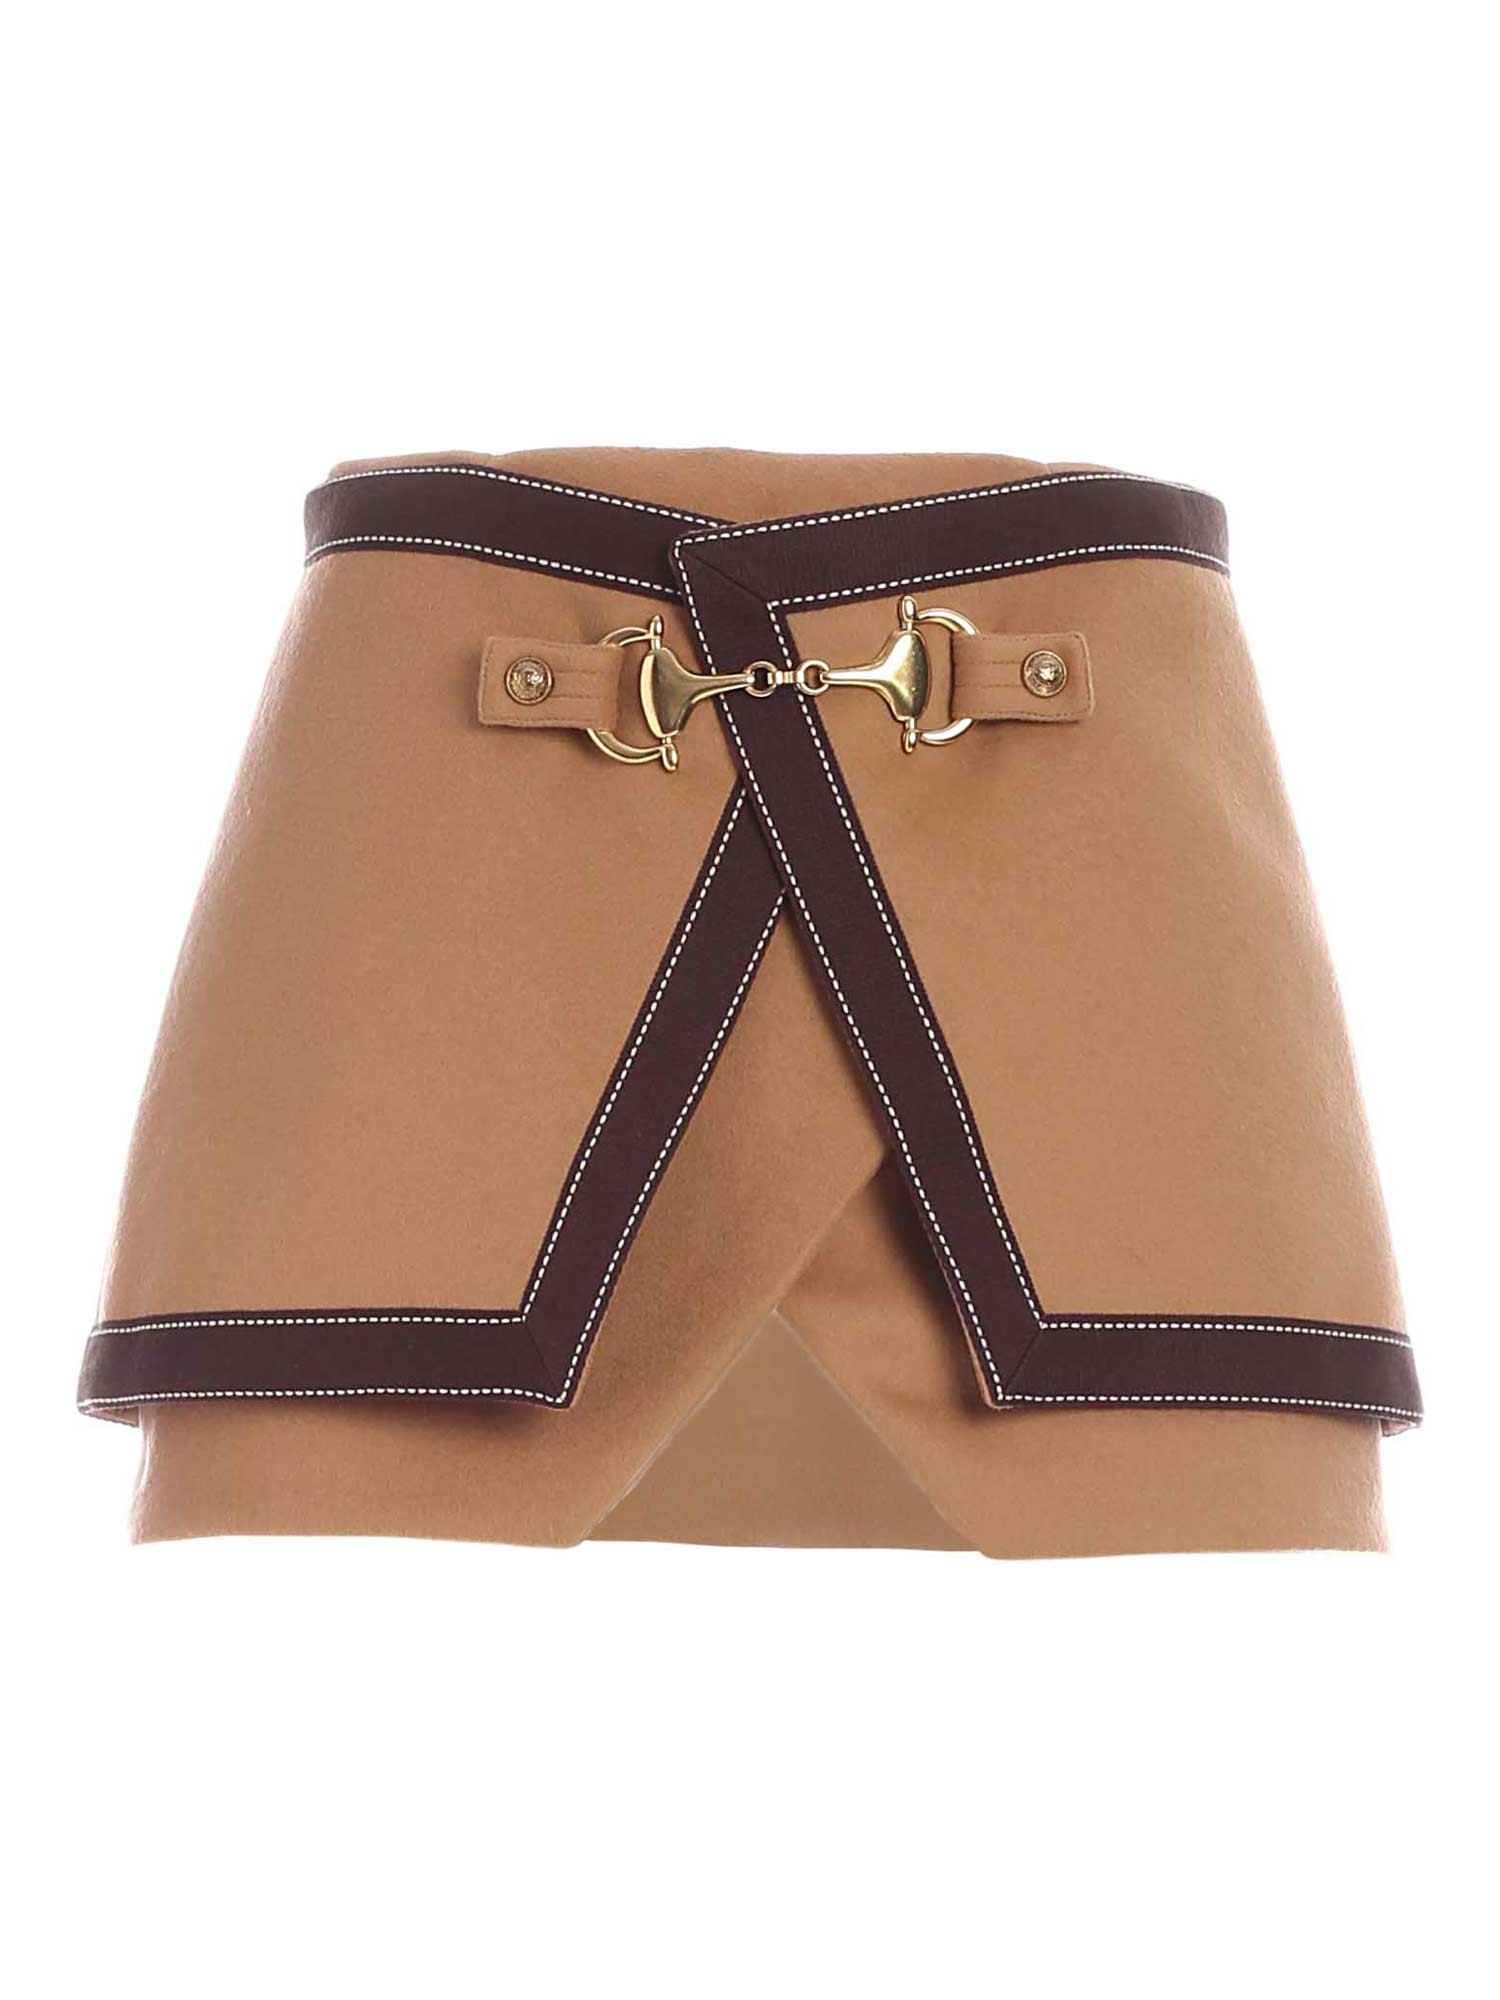 Balmain GOLDEN DETAILS SKIRT IN BROWN